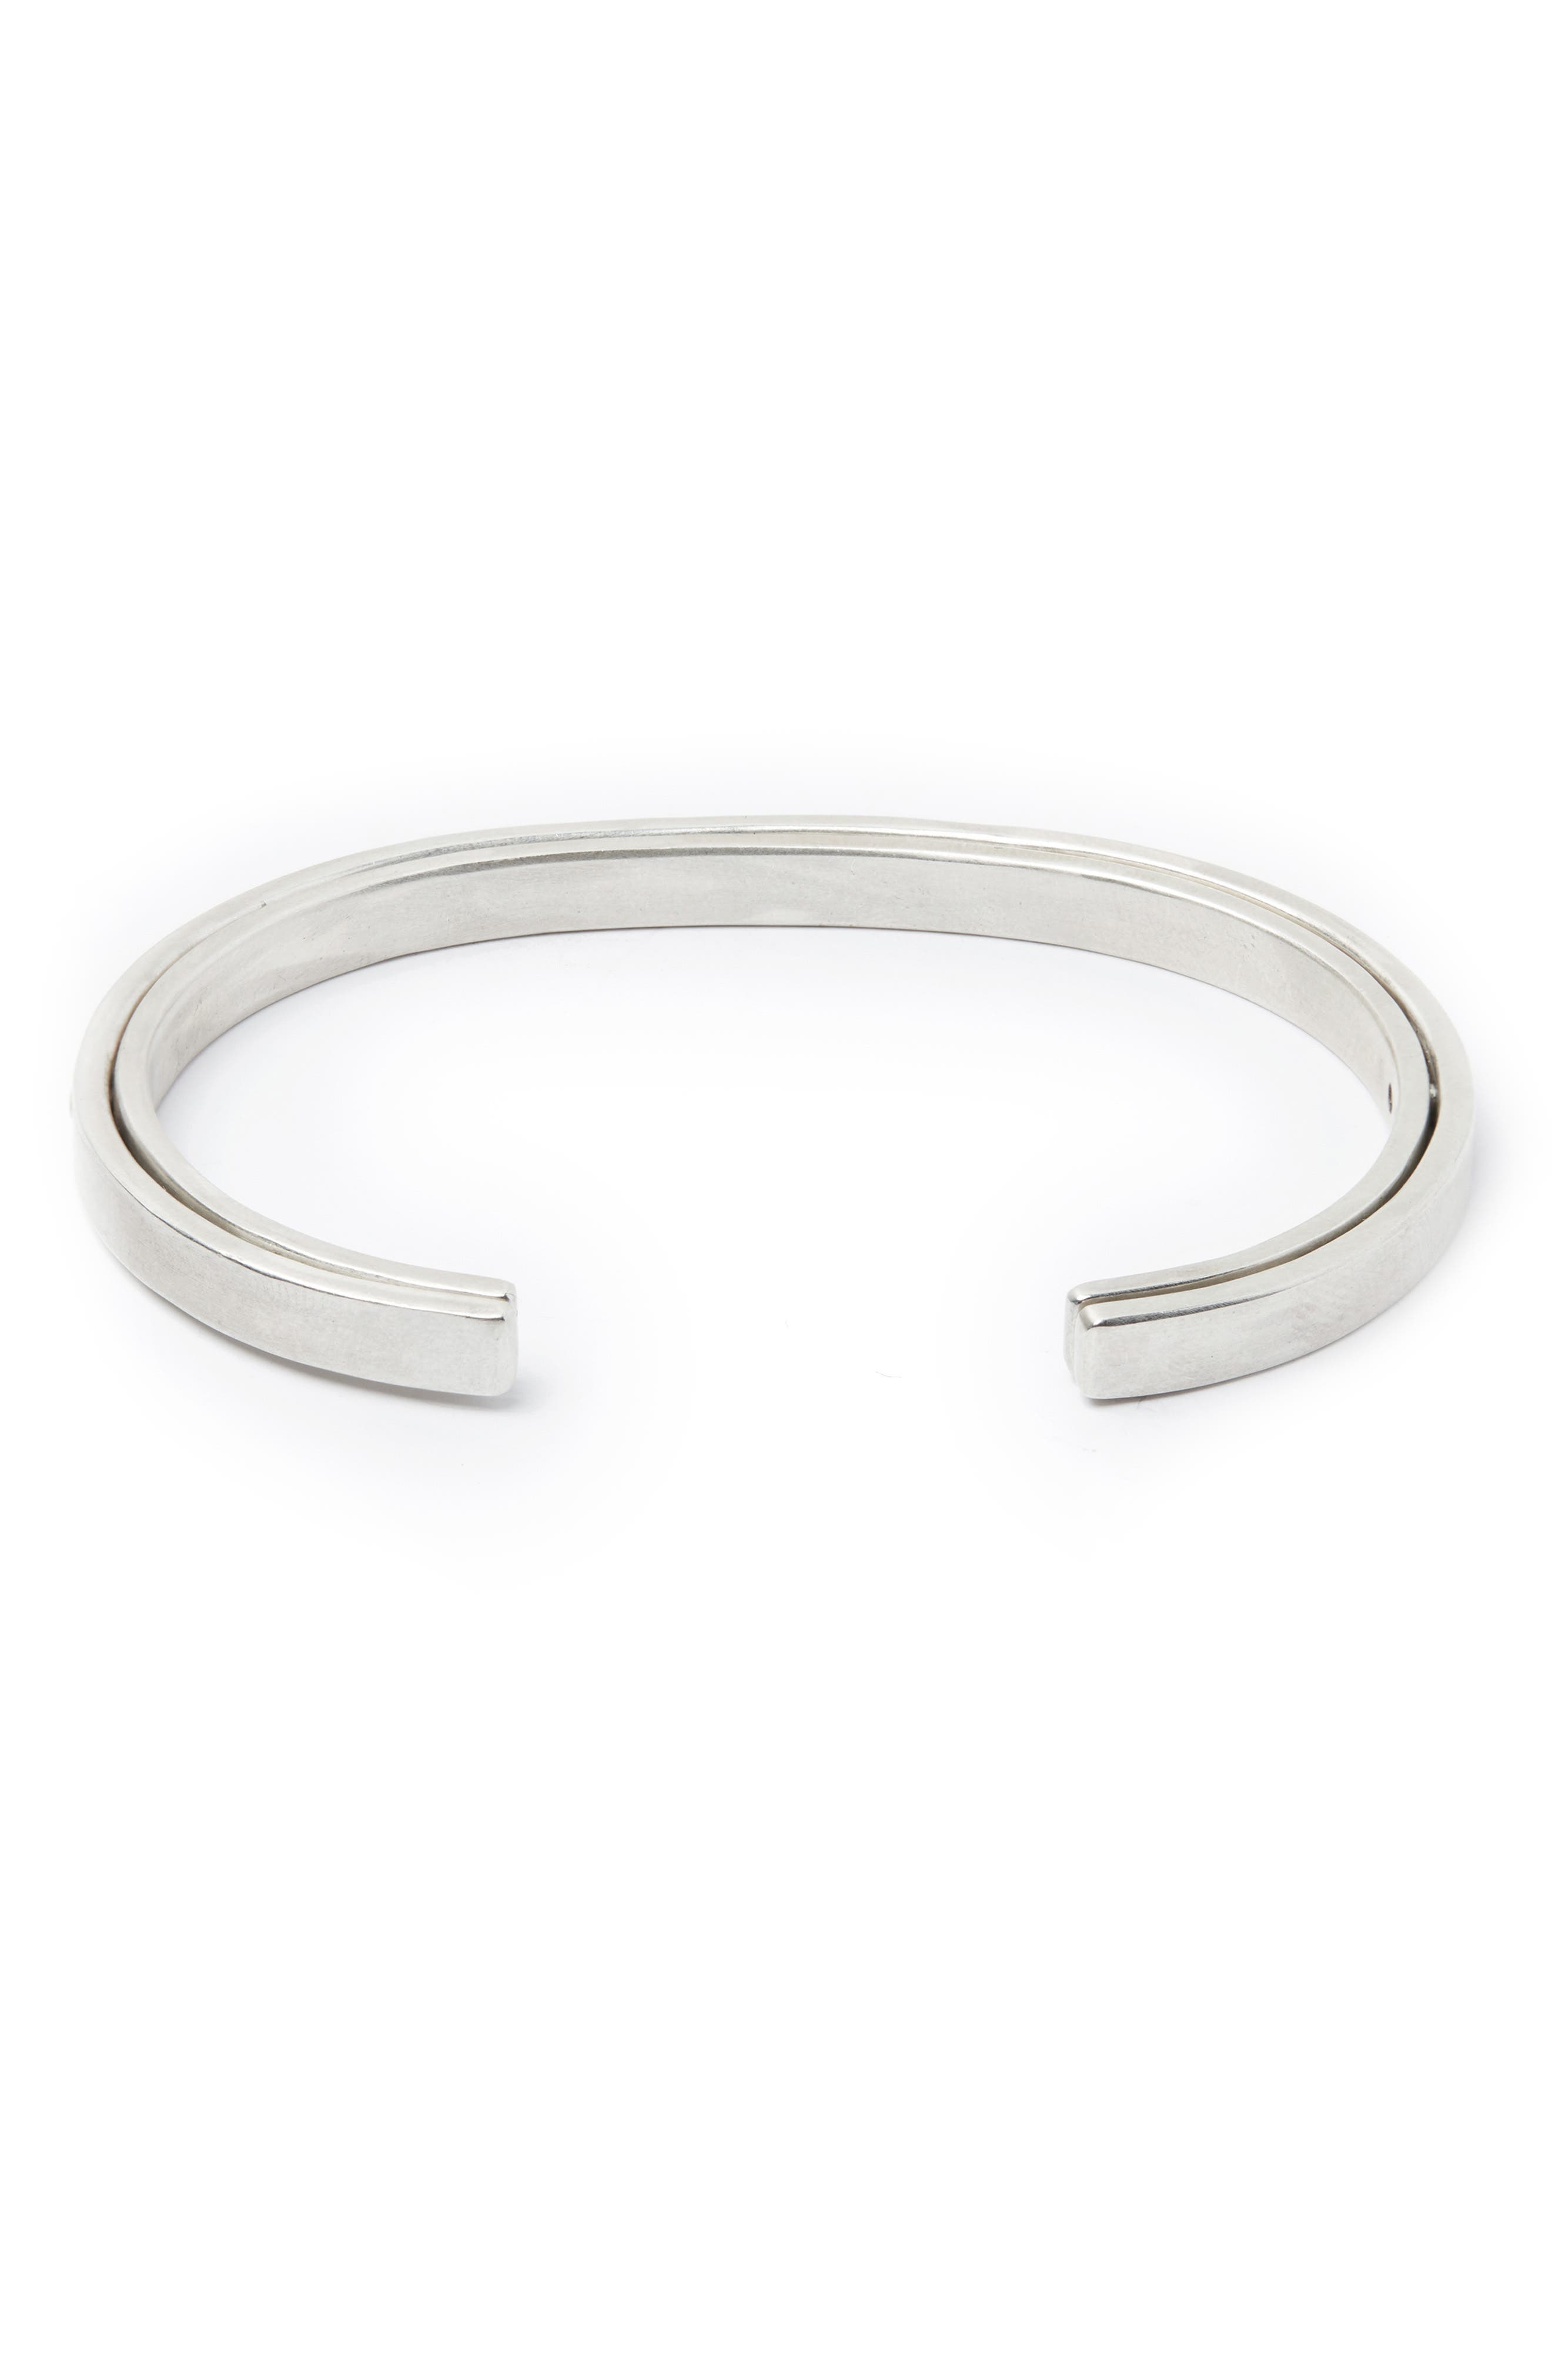 Sterling Silver Cuff Bracelet,                             Main thumbnail 1, color,                             SILVER